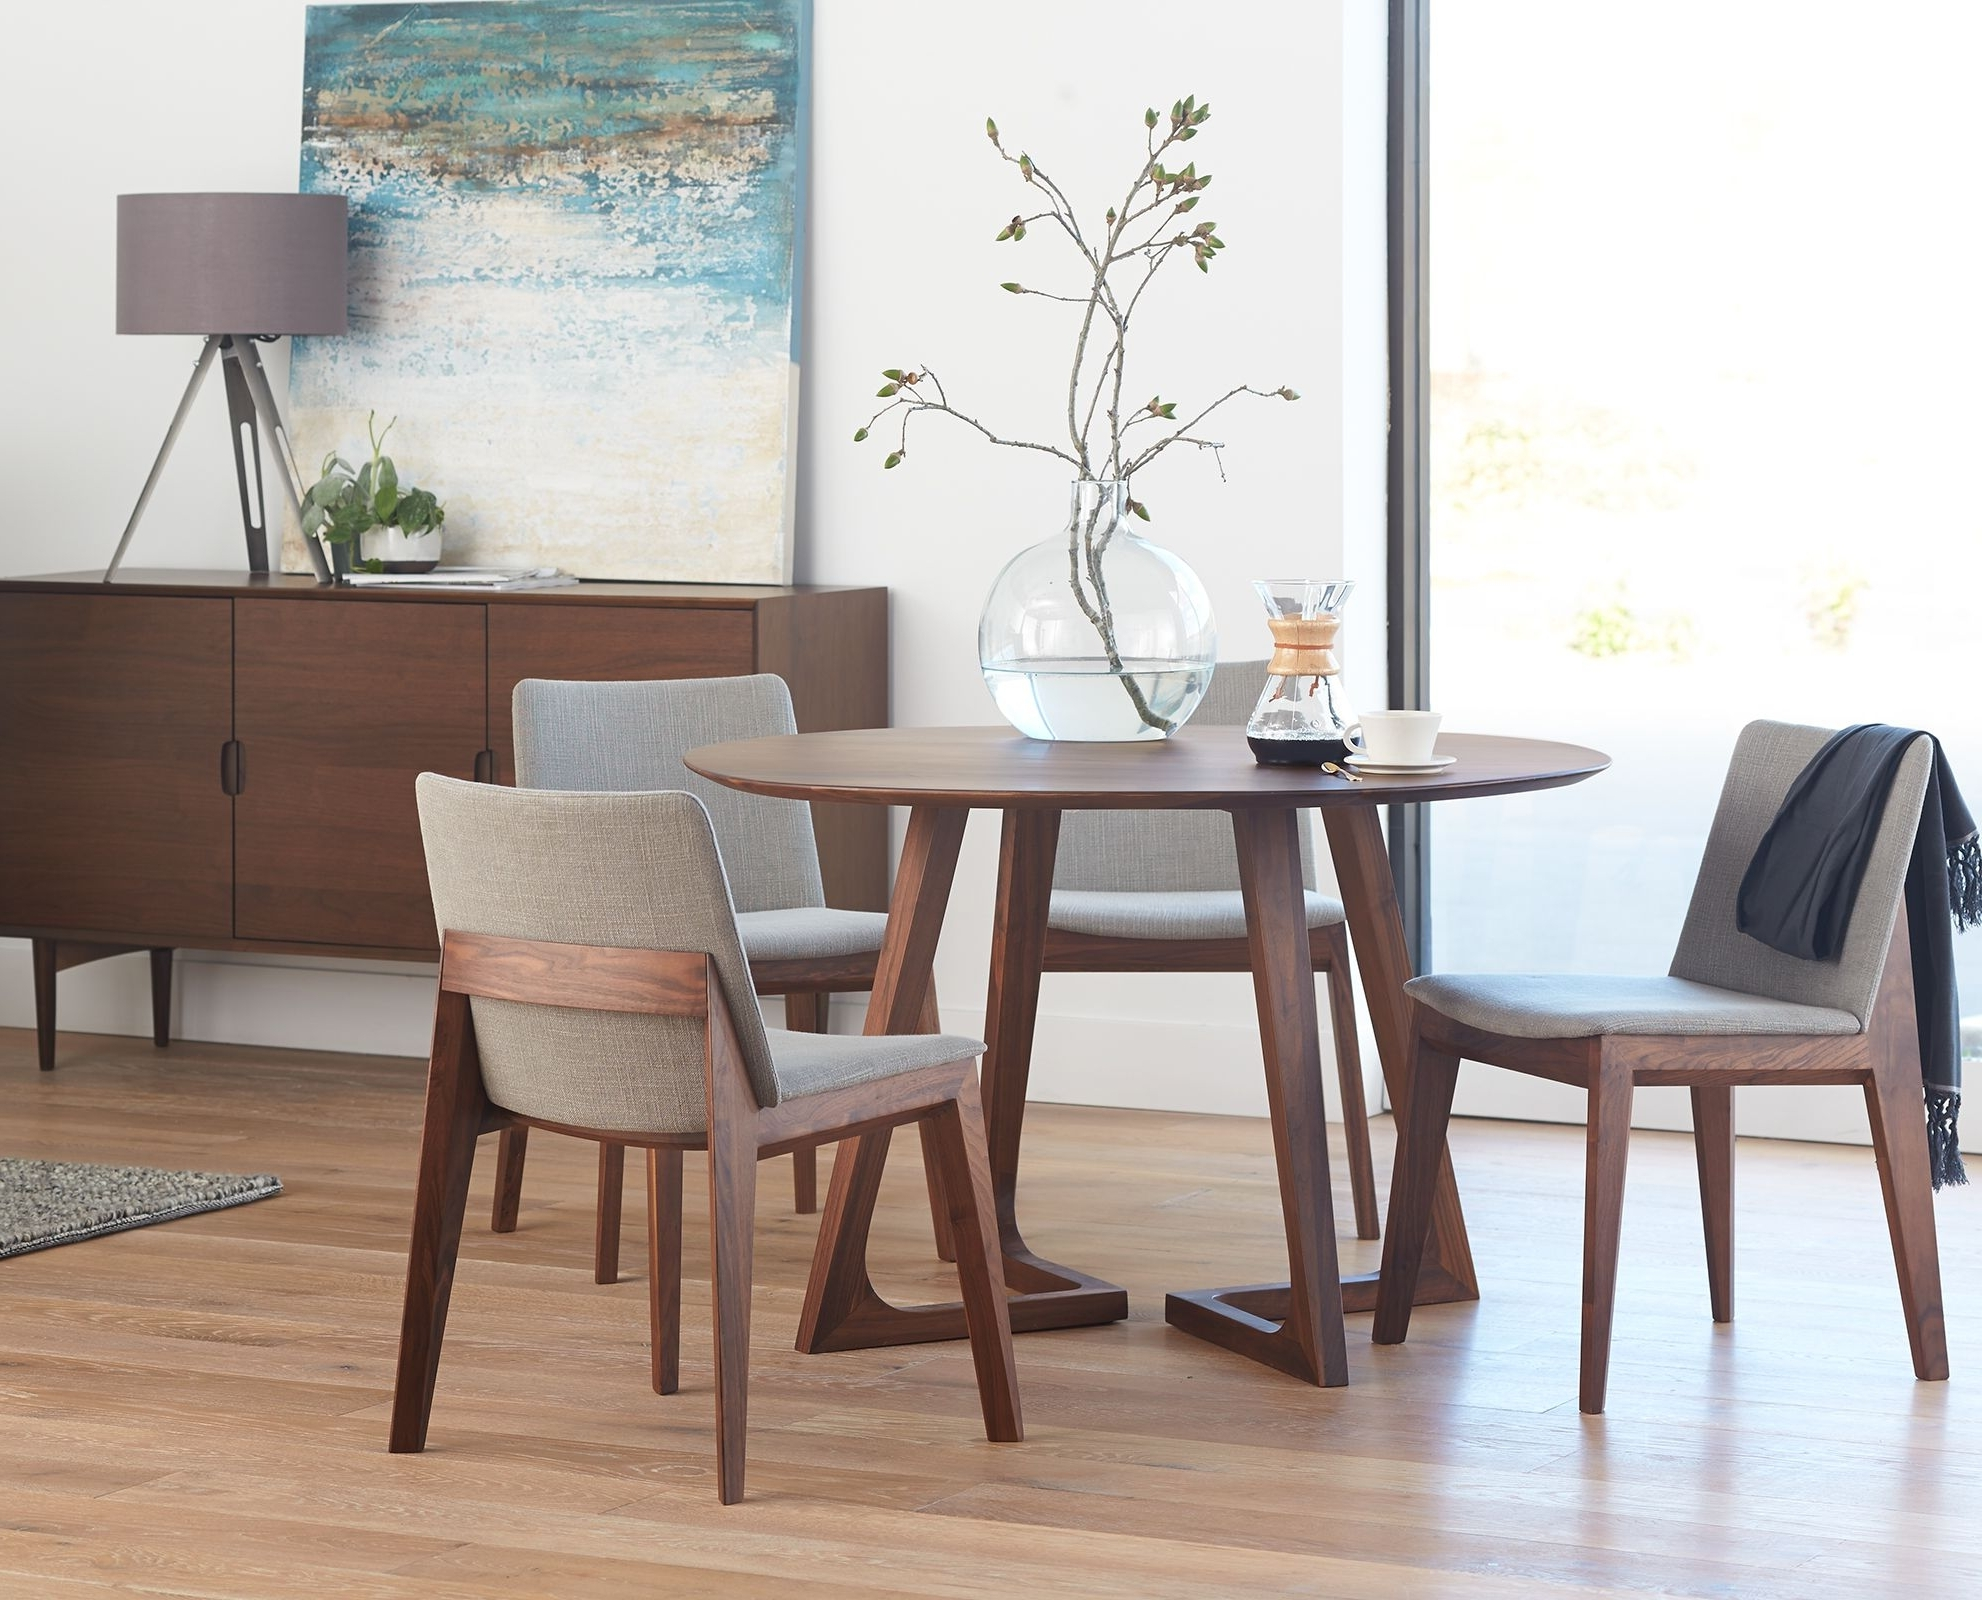 Dining intended for Market 7 Piece Dining Sets With Host And Side Chairs